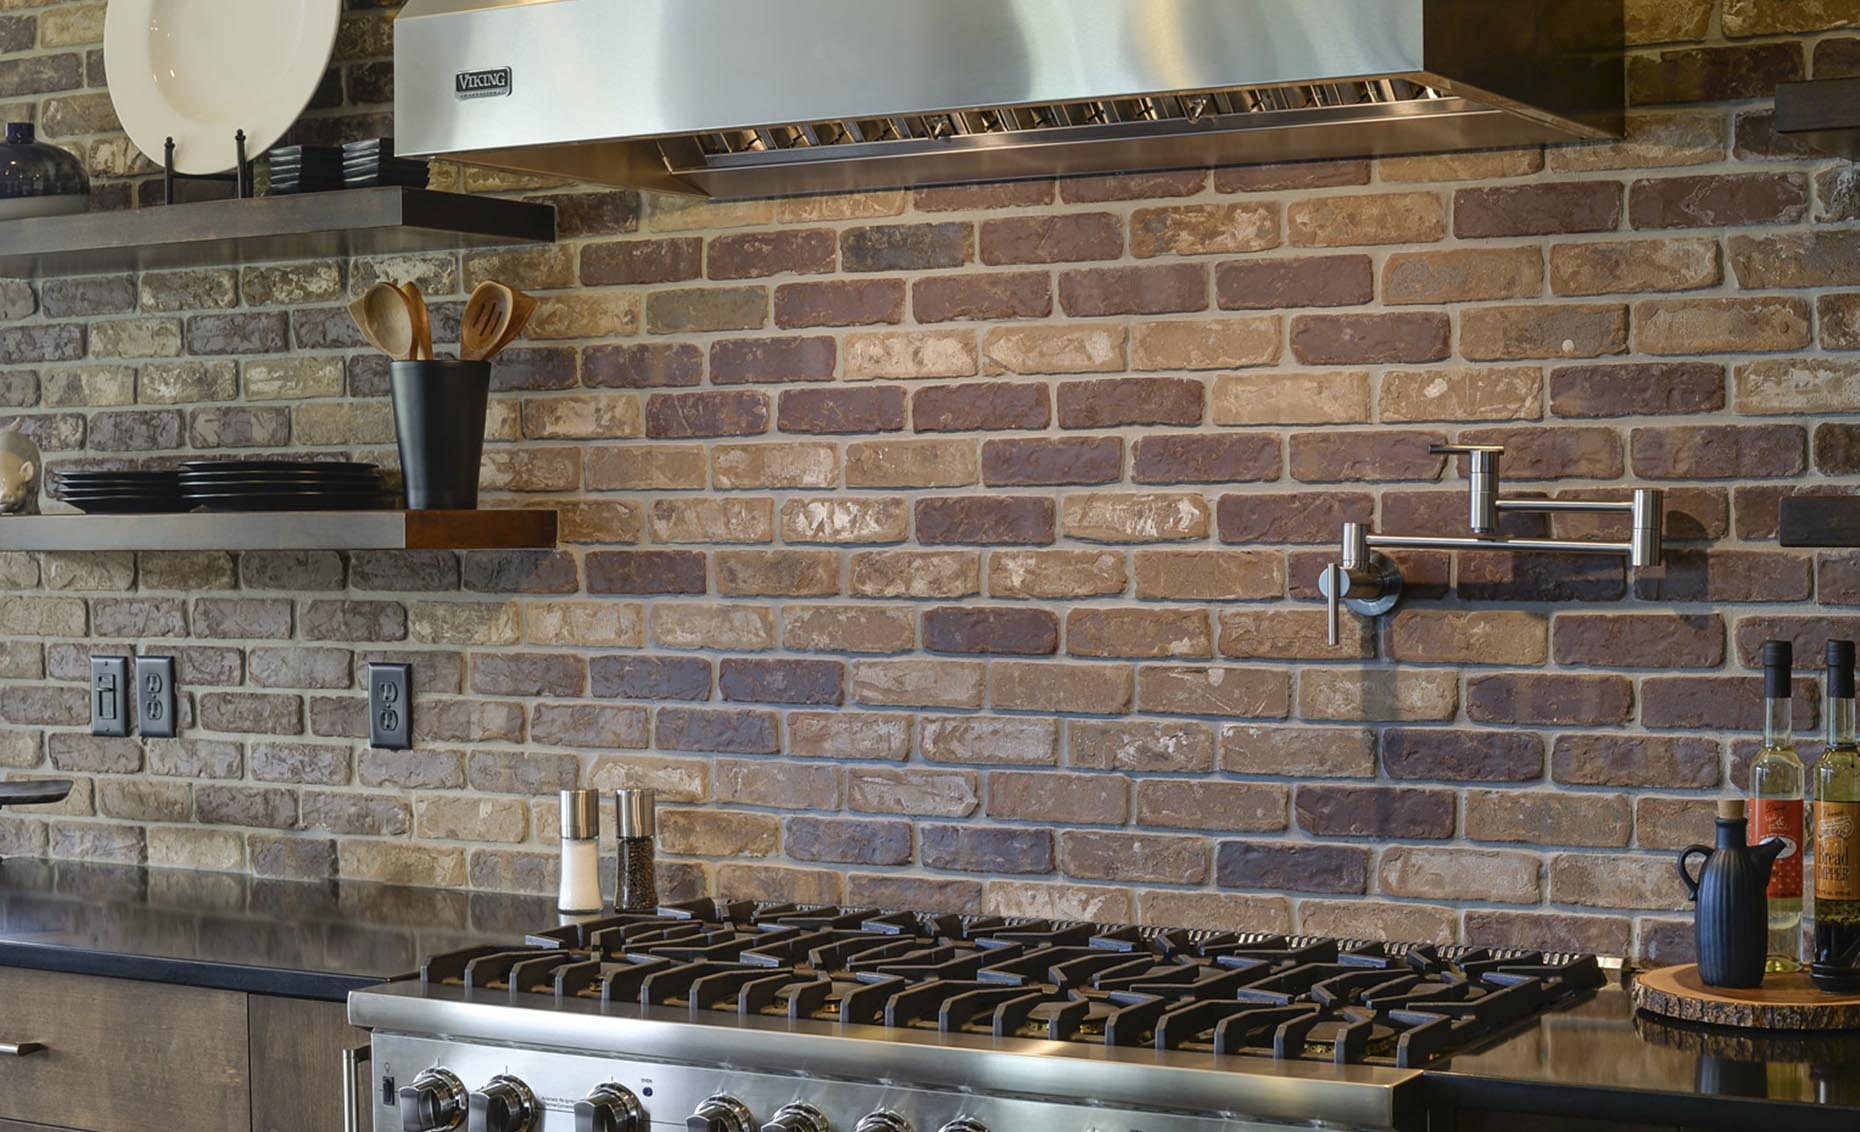 The Salmon Falls House Kitchen Backsplash